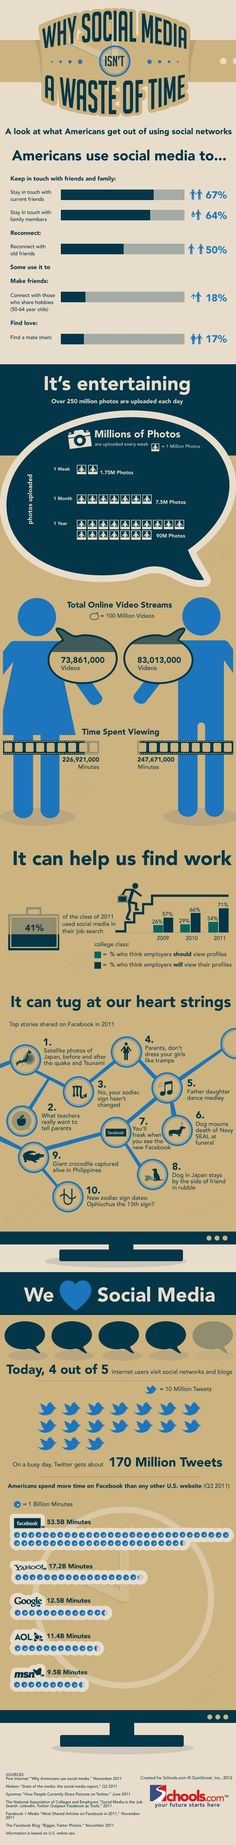 Is Social Media a Waste of Time? [Infographic] #socialmedia